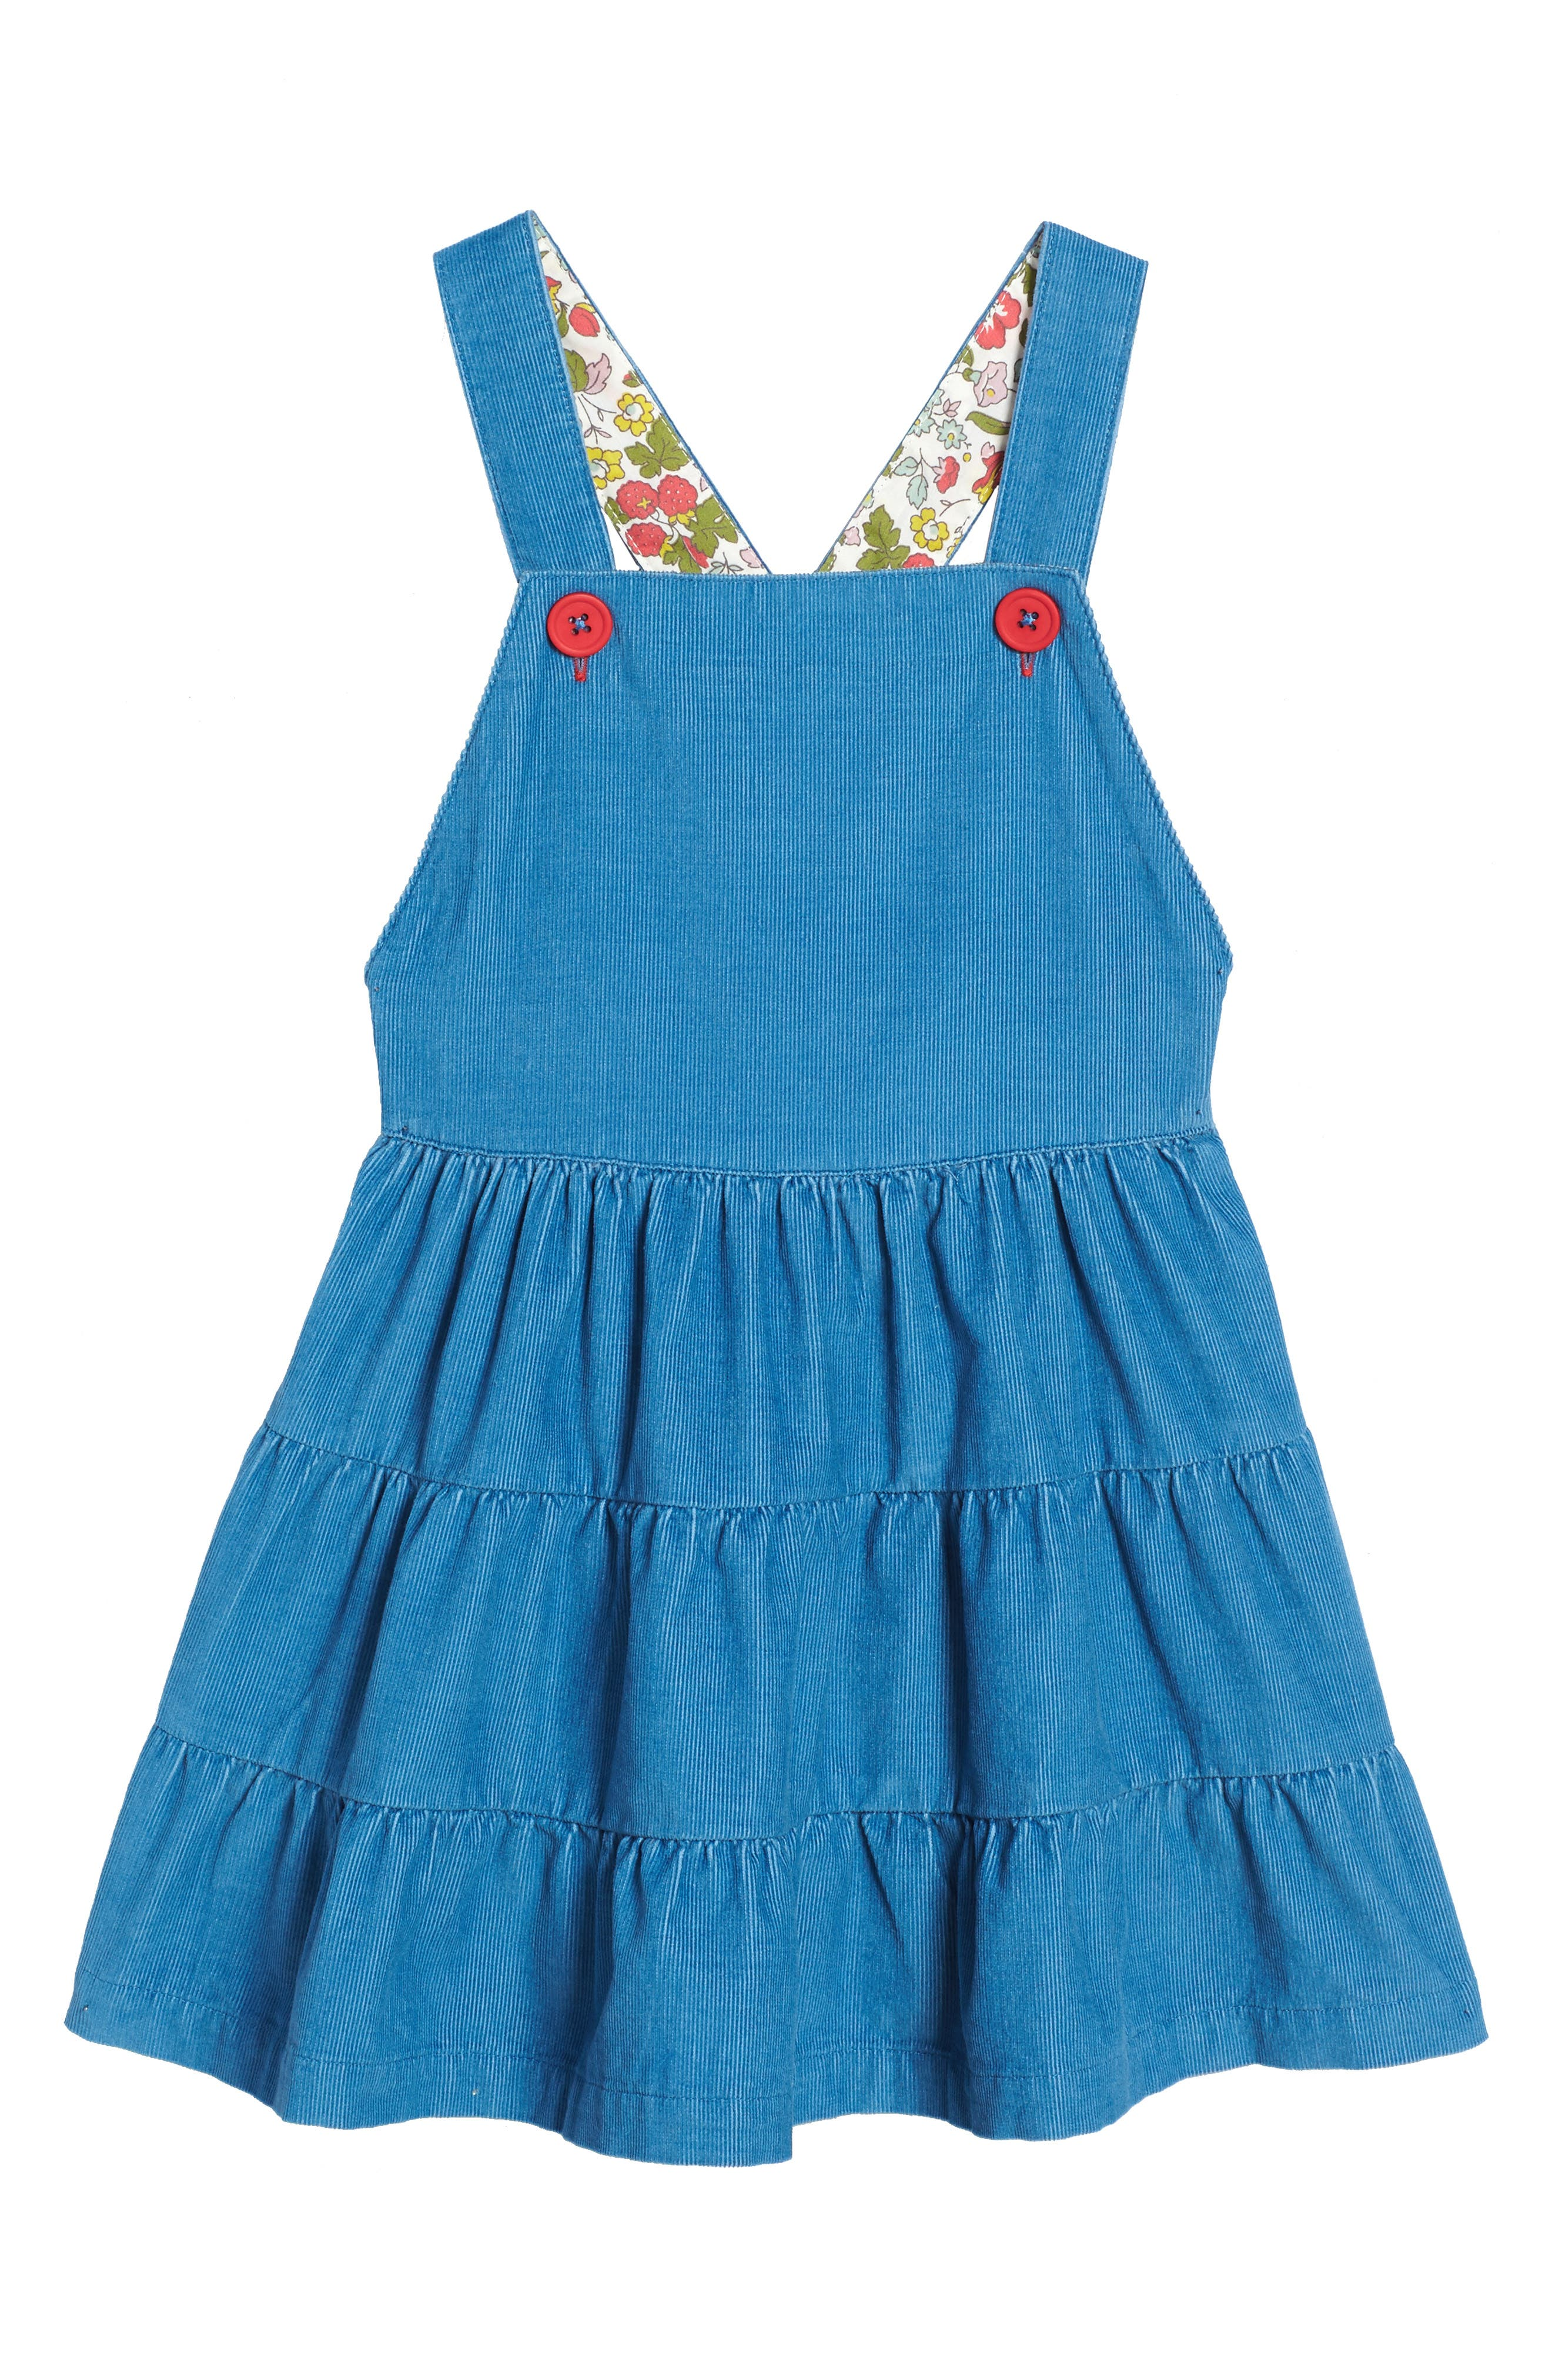 Girls' Blue Dresses & Rompers: Everyday & Special Occasion | Nordstrom